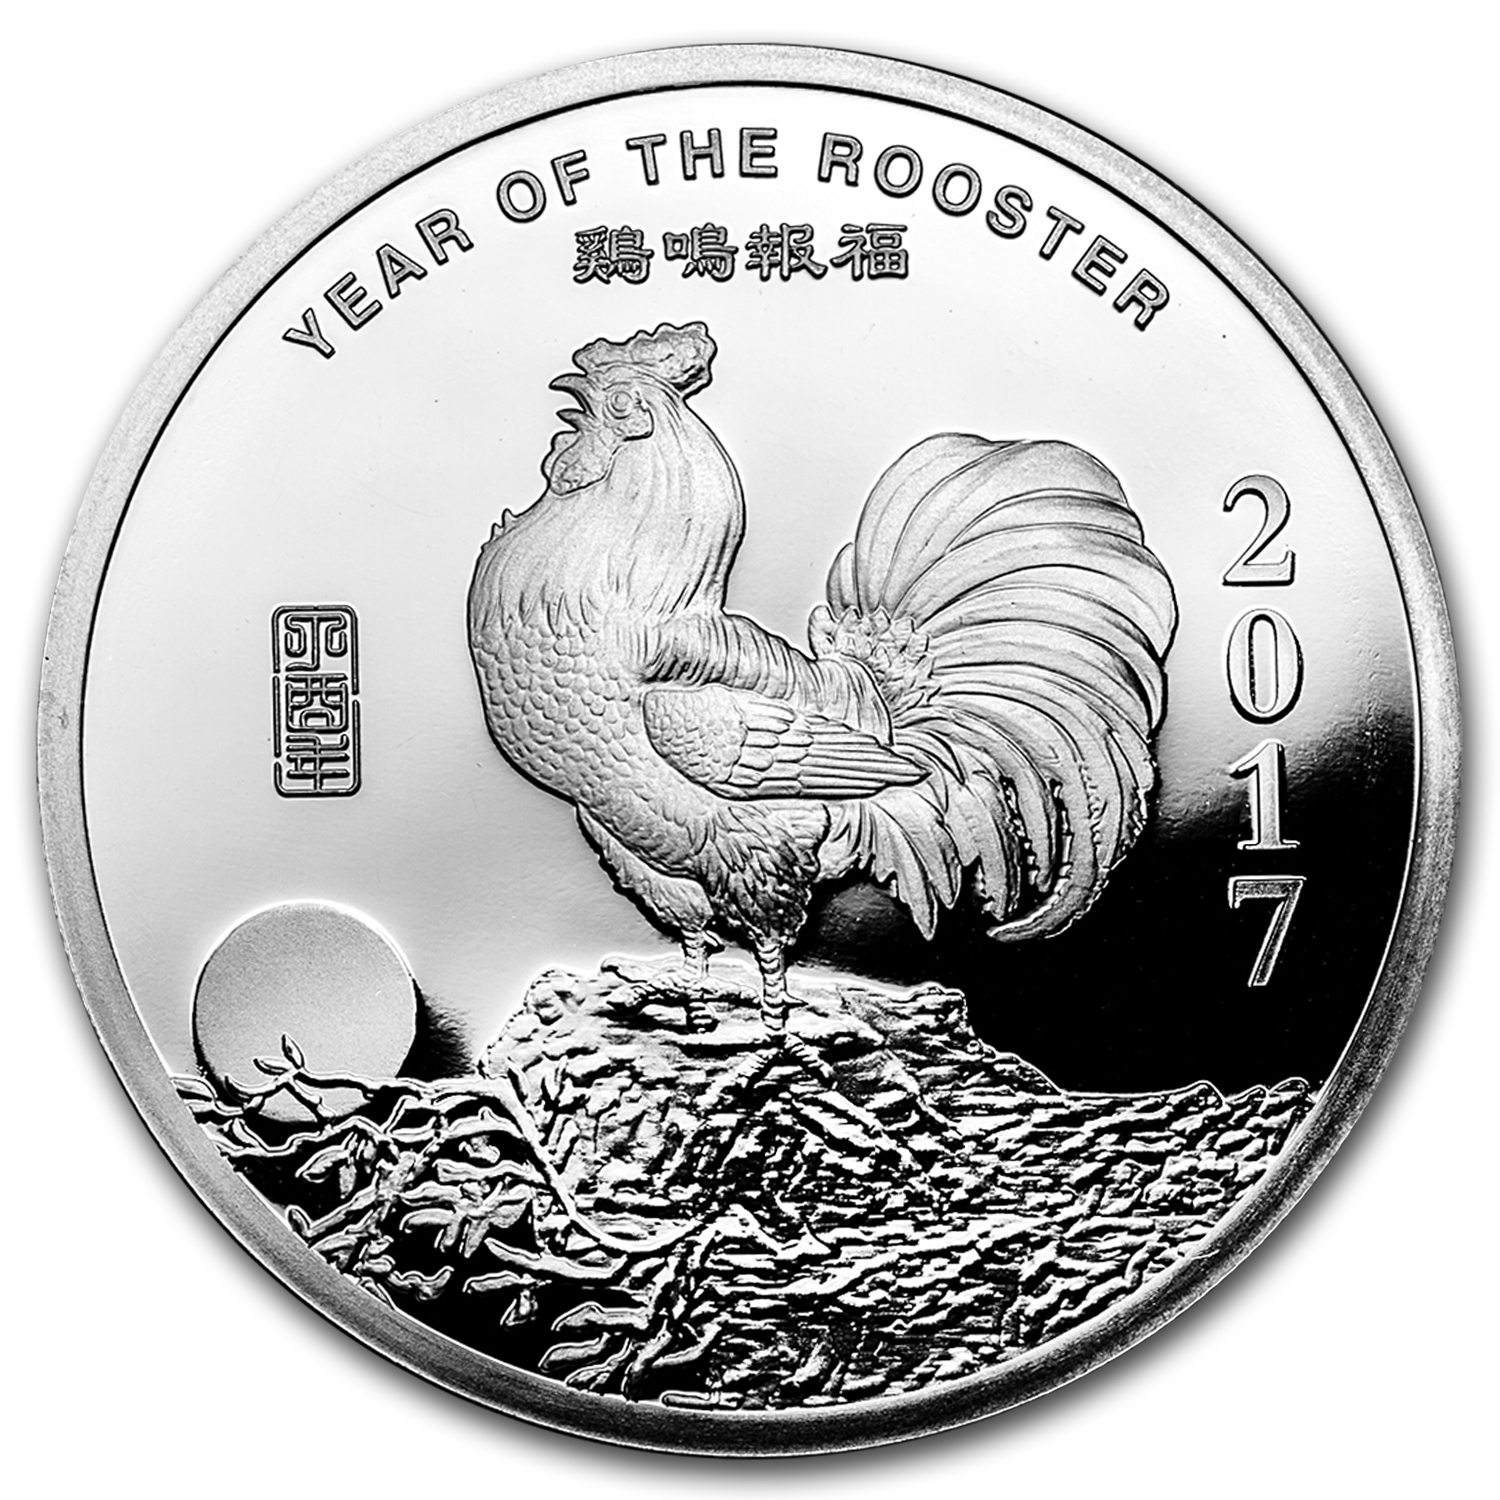 1/2 oz Silver Round - APMEX (2017 Year of the Rooster)